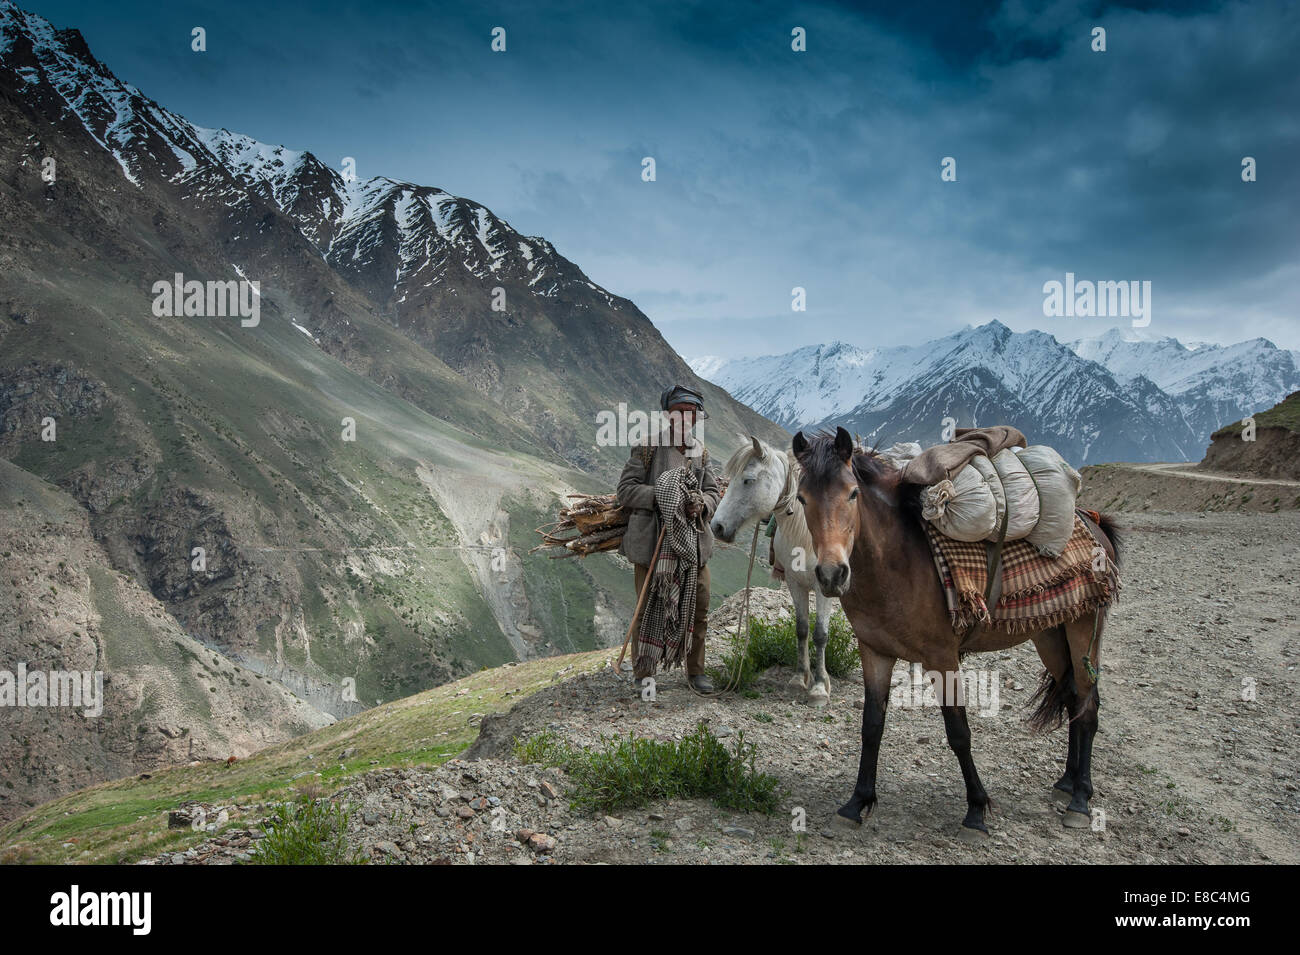 Mountain Nomads is our for herding with horses - Stock Image